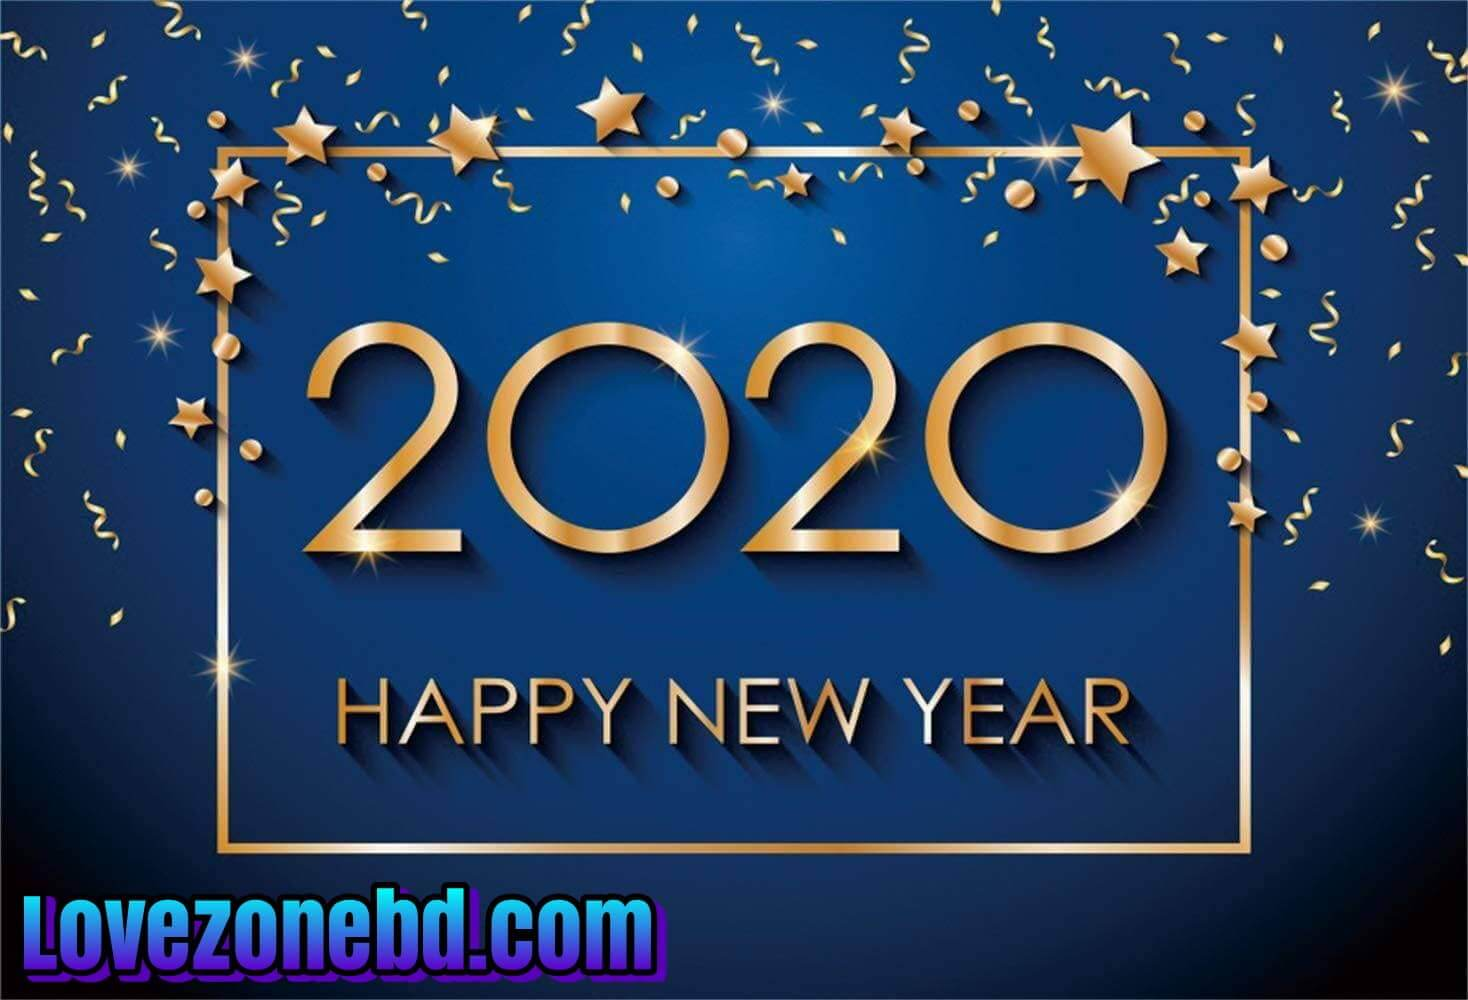 Happy new year sms 2020